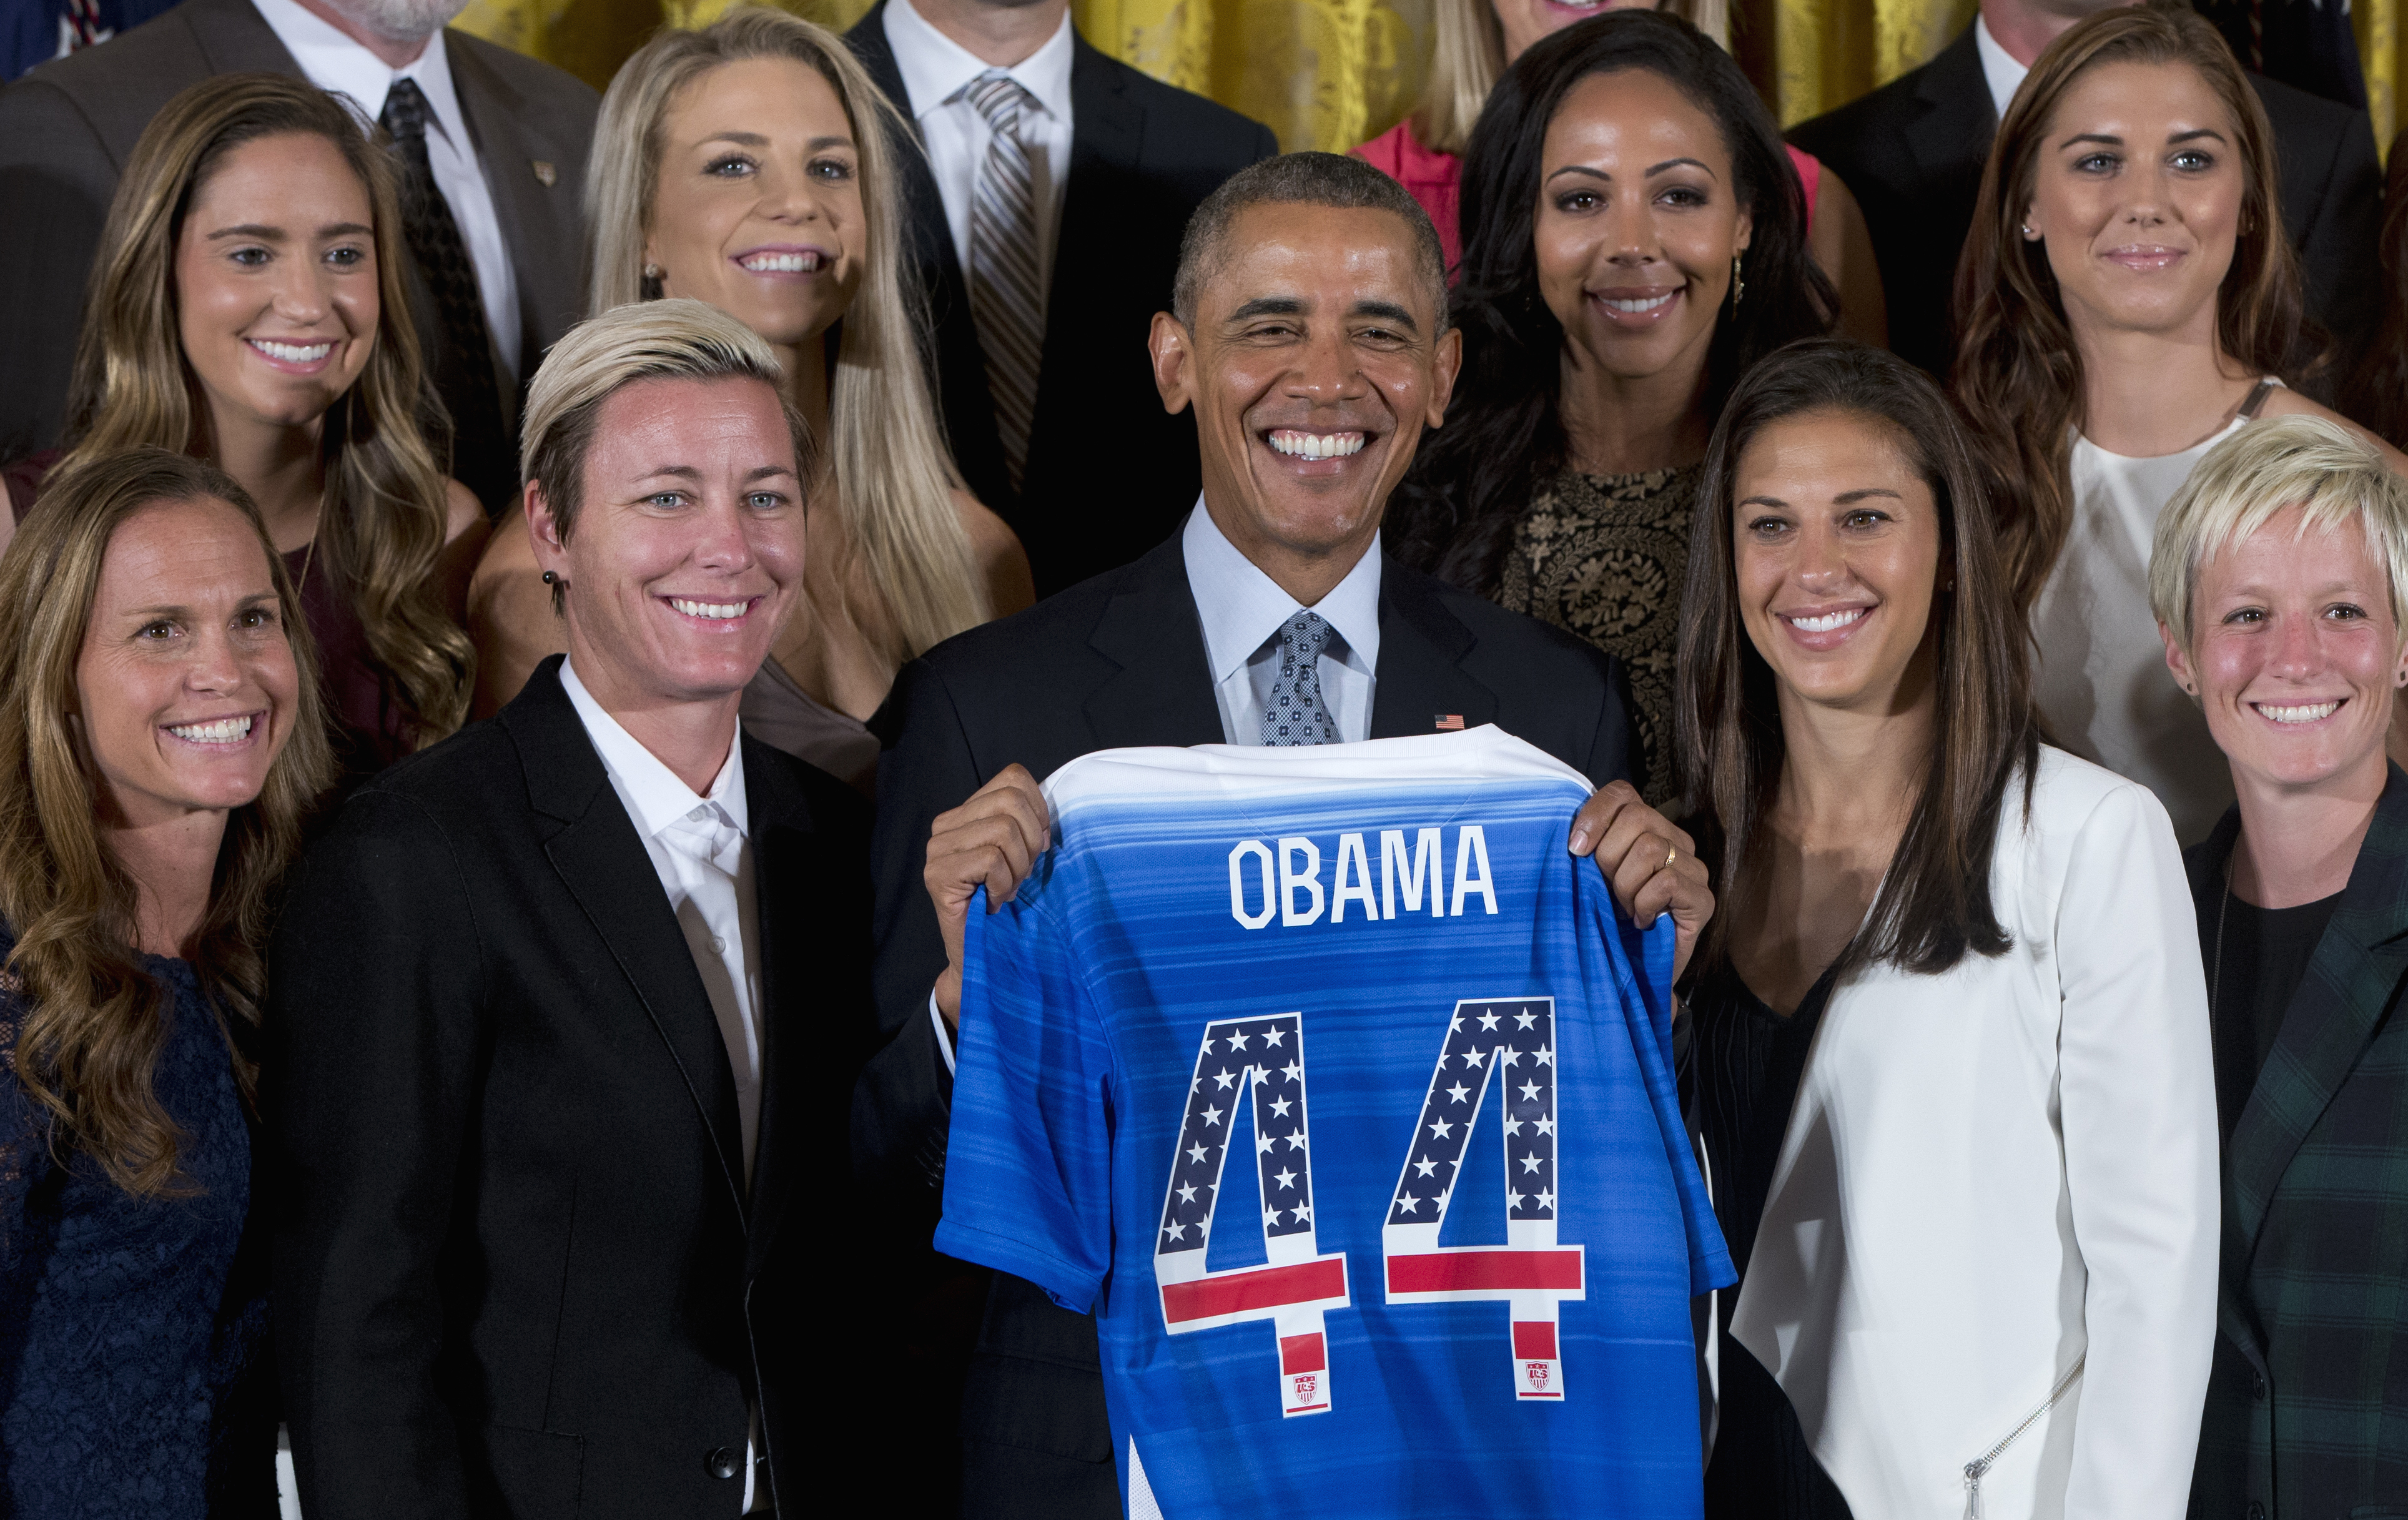 President Obama poses with a jersey he received from the U.S. Women's National Soccer Team during a ceremony to honor the team and their victory in the 2015 FIFA Women's World Cup. Standing with Obama are (from left) Christie Rampone, Morgan Brian, Abby Wambach, Julie Johnston, Sydney Leroux, Carli Lloyd, Alex Morgan, and Megan Rapinoe. Carolyn Kaster/AP